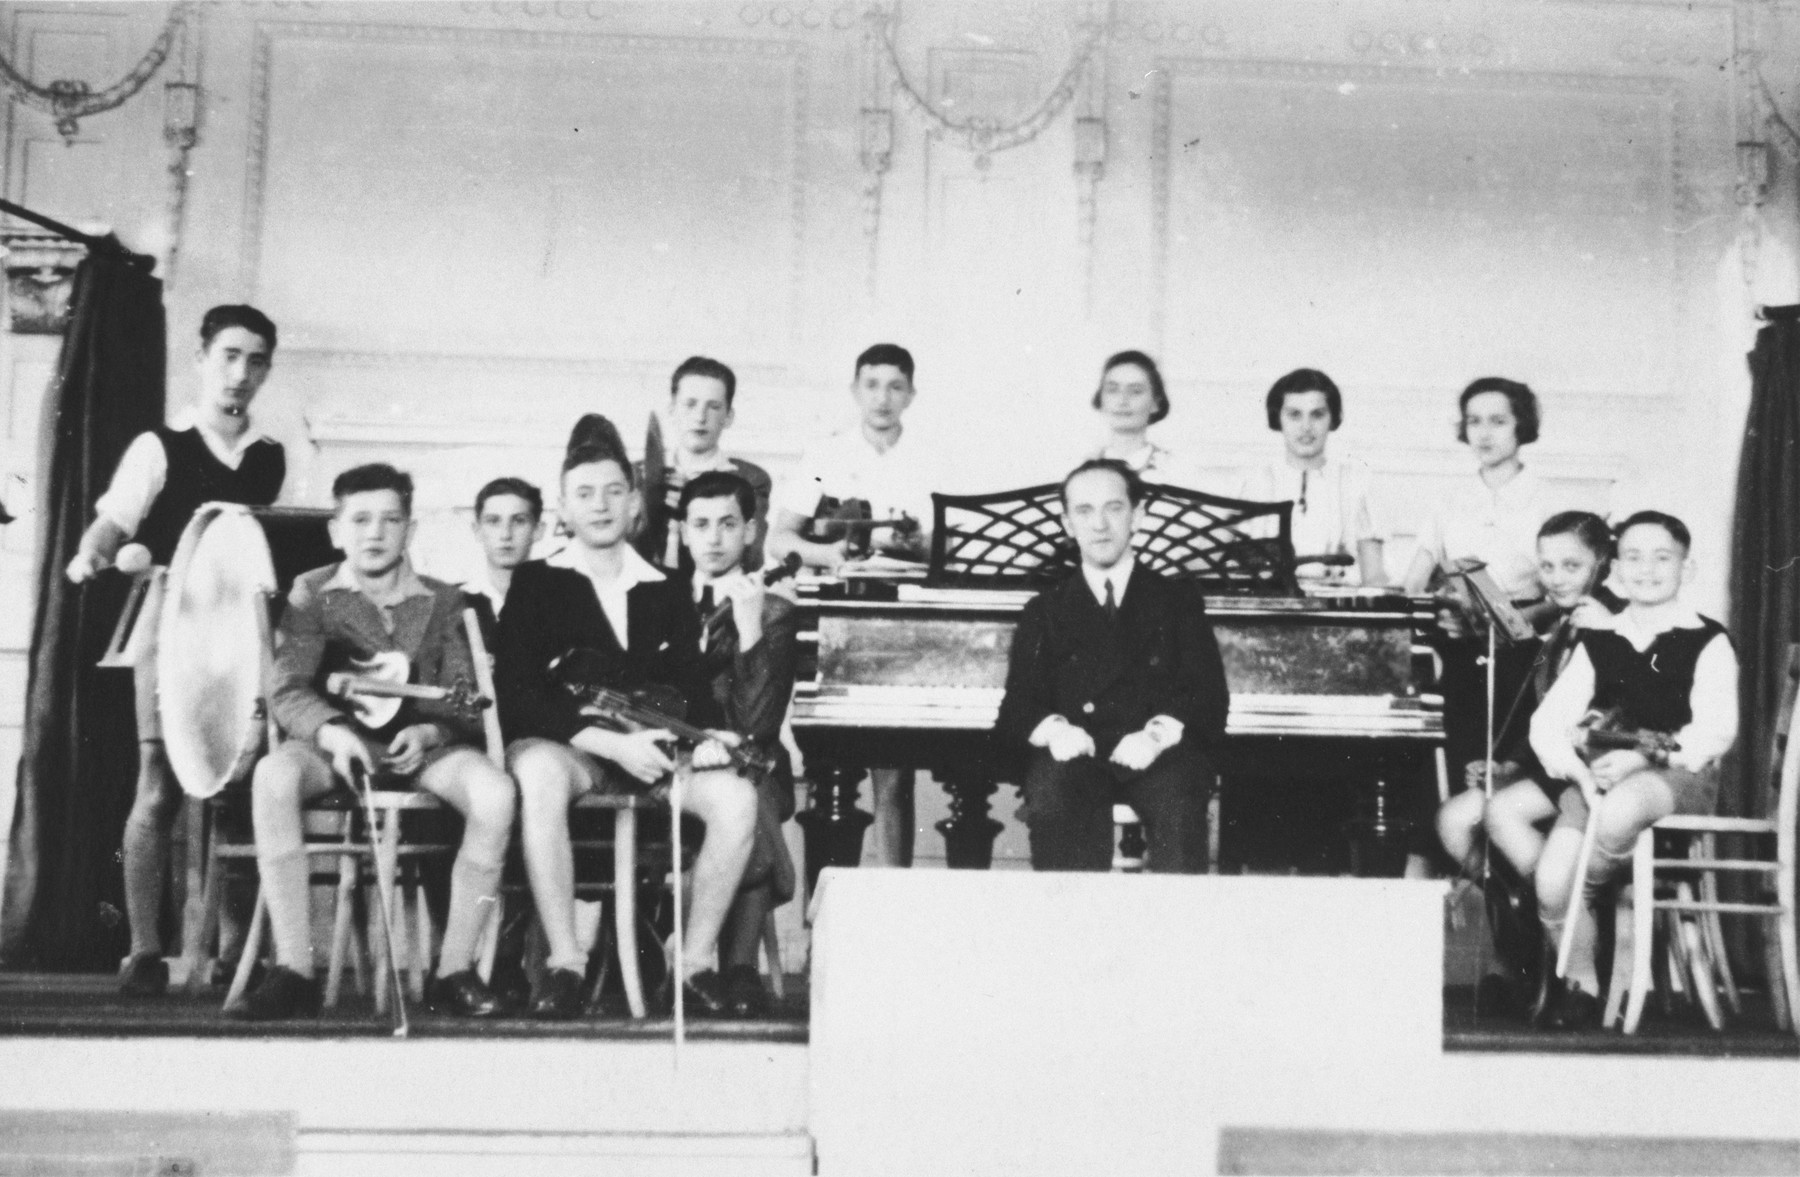 Group portrait of the members of the Jewish youth orchestra, sponsored by the Mittleschule der Judischen Gemeinde, with their musical instruments.  The conductor, Herr Loewy, is seated at the piano.  Ruth Cohn is pictured in the second row on the far right holding her violin.